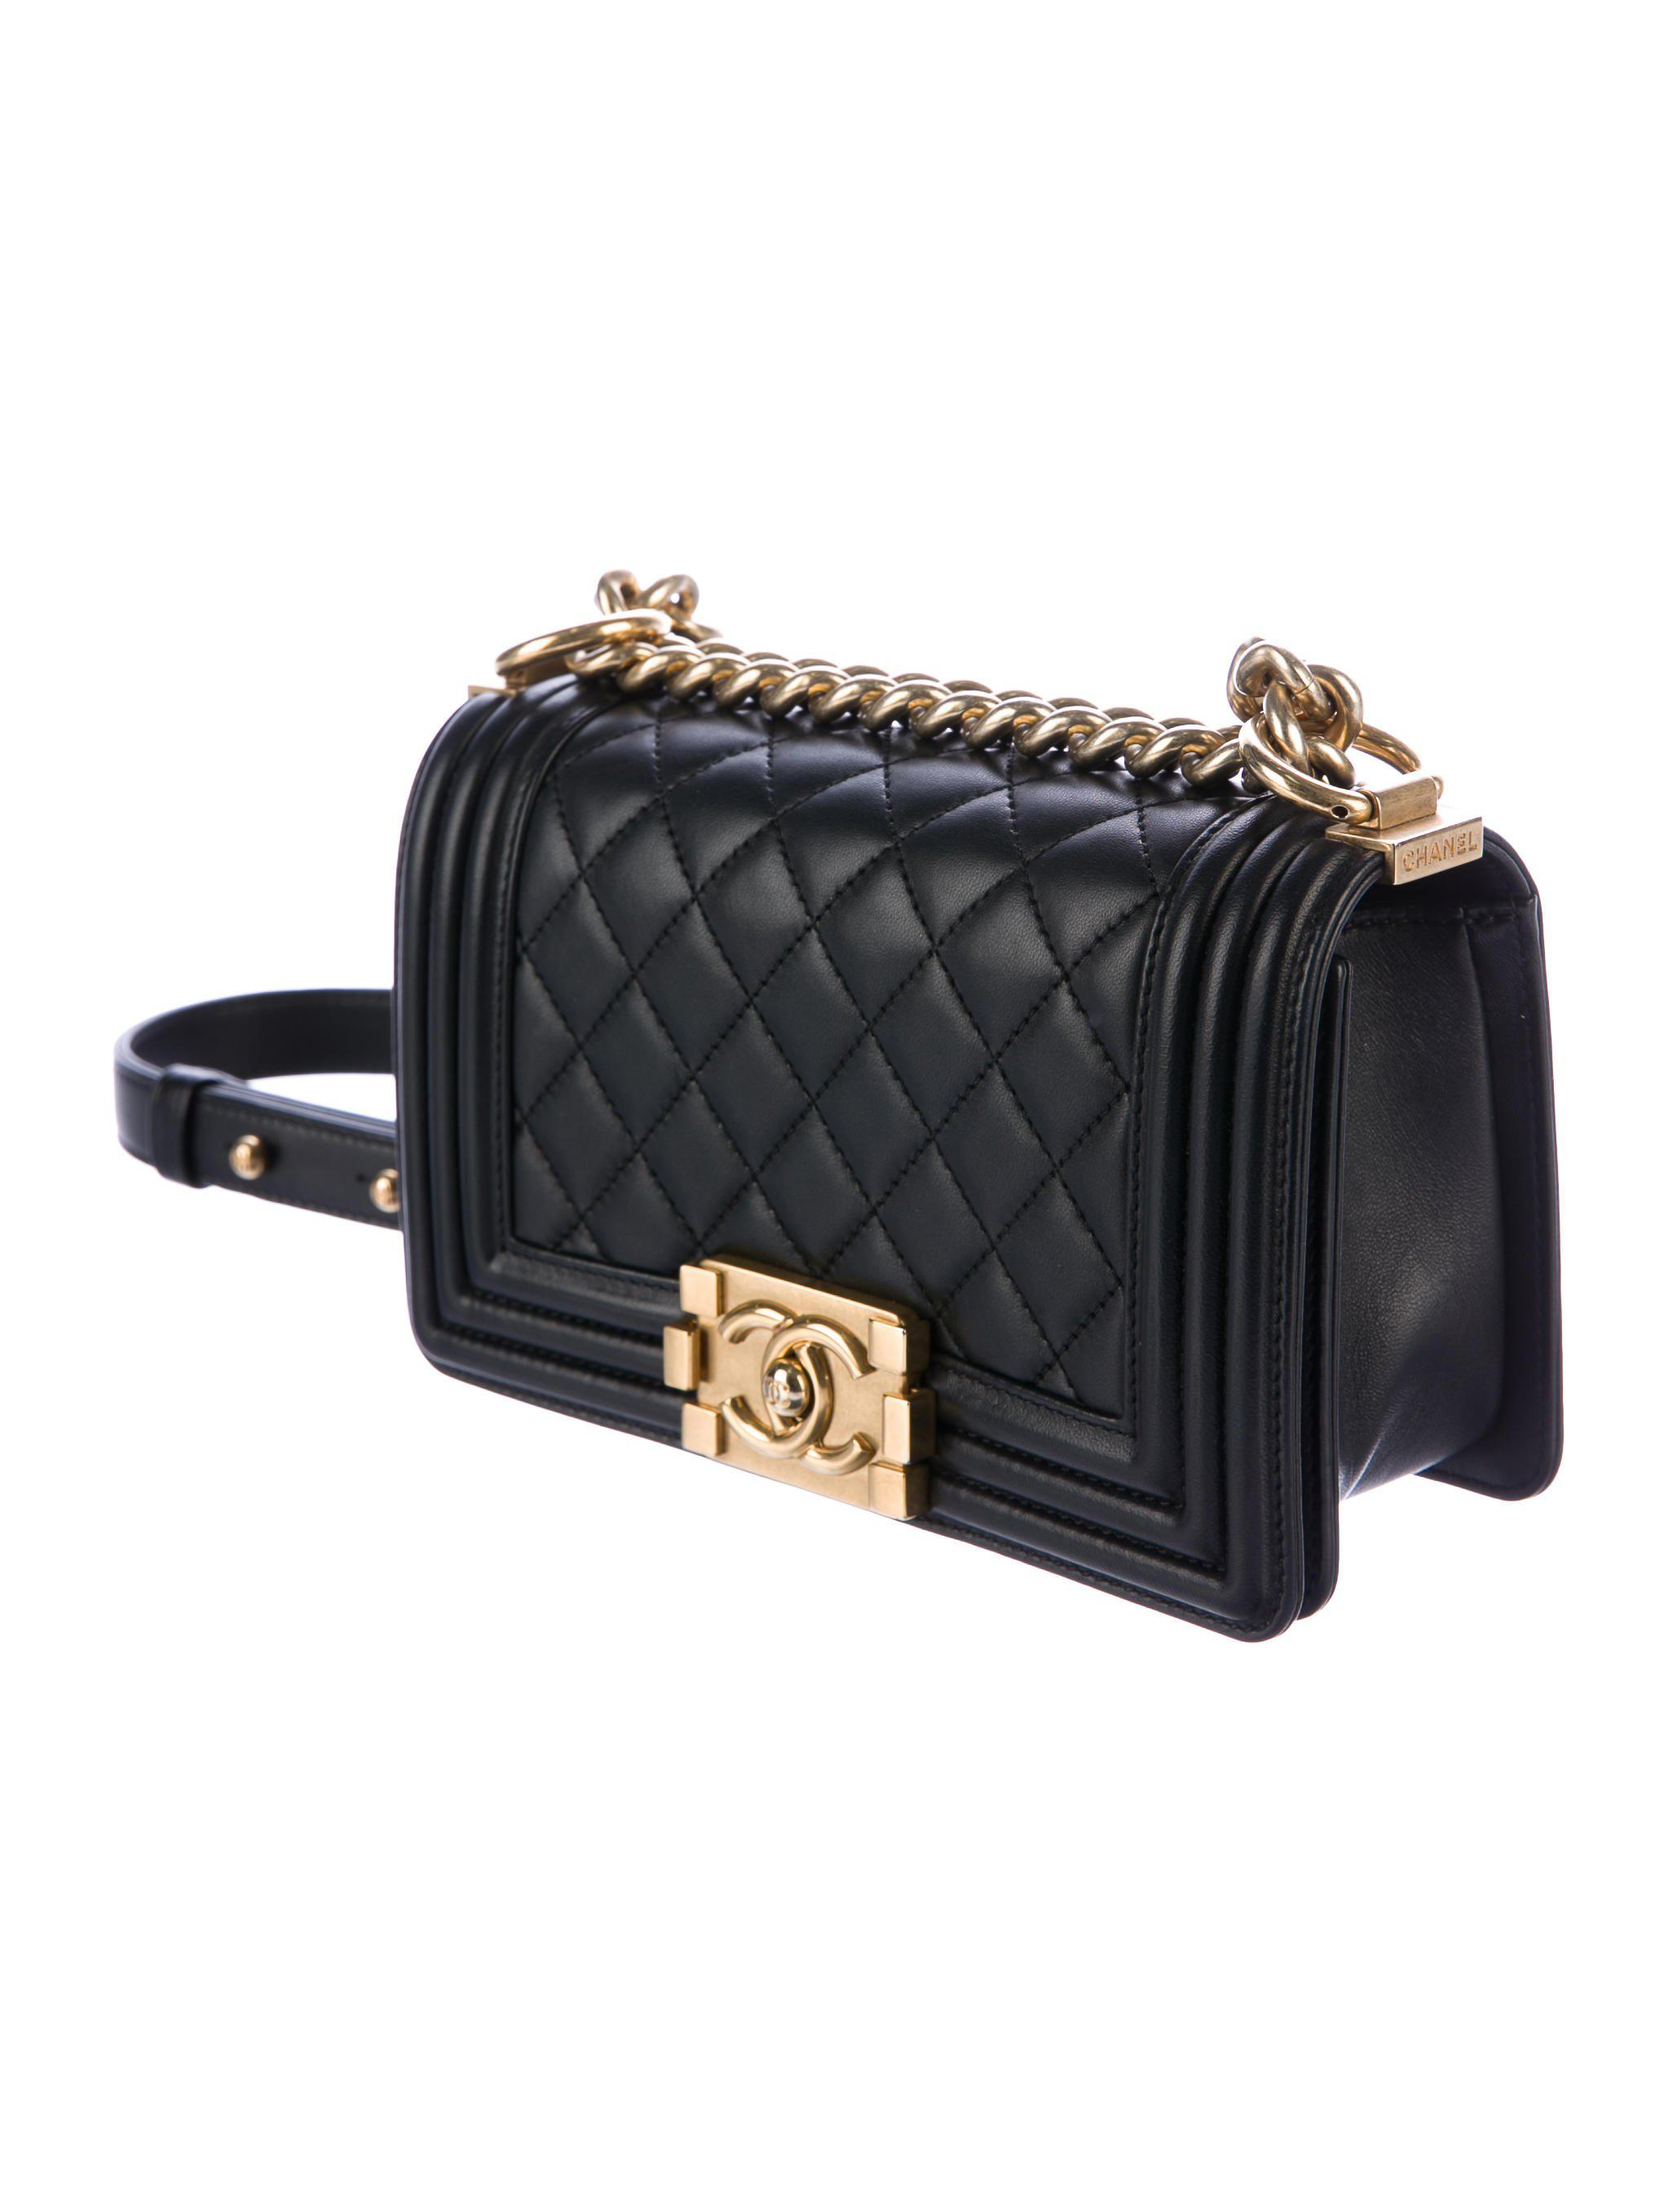 50d55005196 Small Black Chanel Purse - New image Of Purse